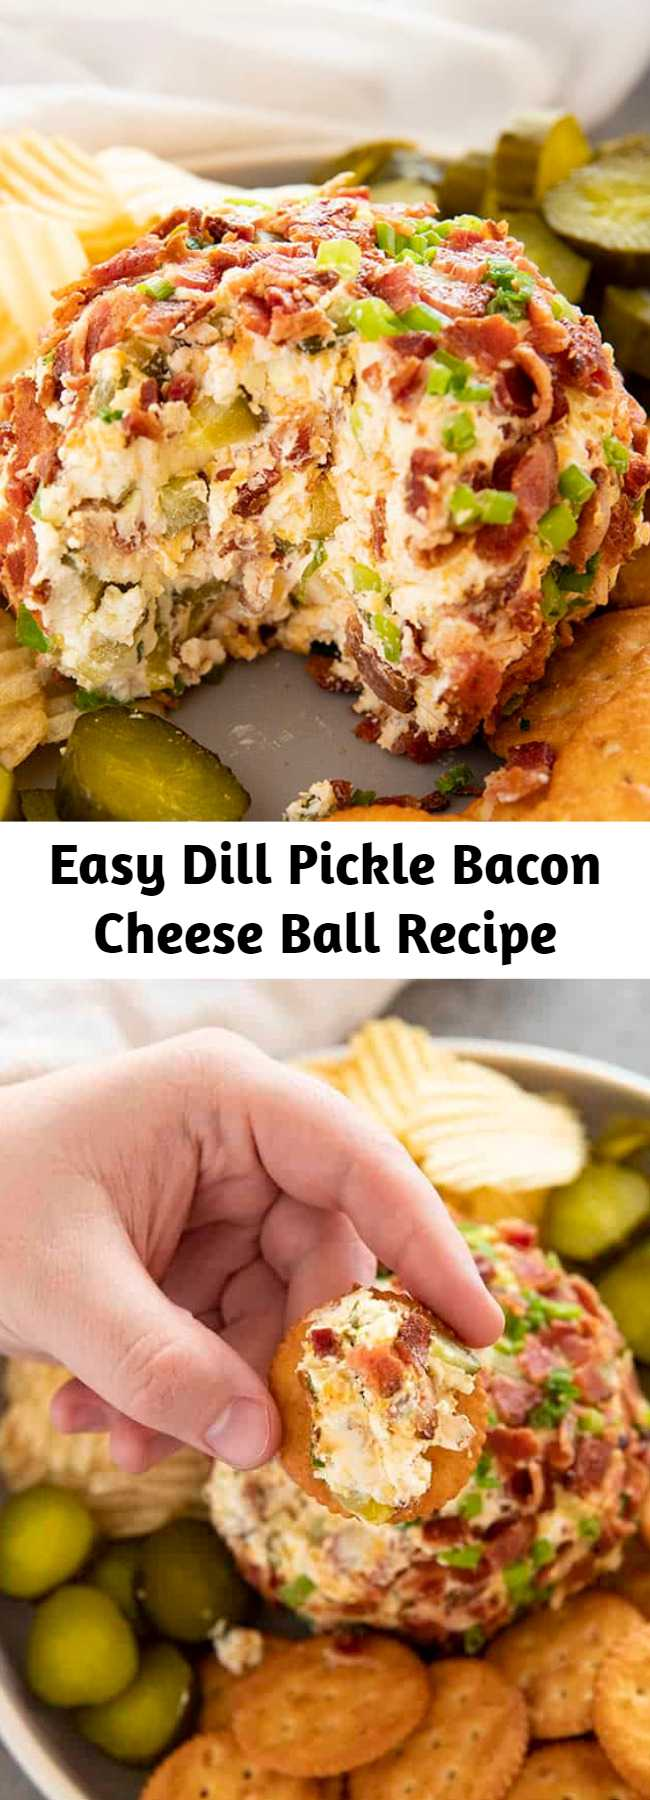 Easy Dill Pickle Bacon Cheese Ball Recipe - Dill Pickle Bacon Cheese Ball is such a fun and easy cheese ball recipe made with cream cheese, cheddar, pickles, and bacon!  The perfect appetizer for any party! #thesaltymarshmallow #tailgating #footballfood #pickles